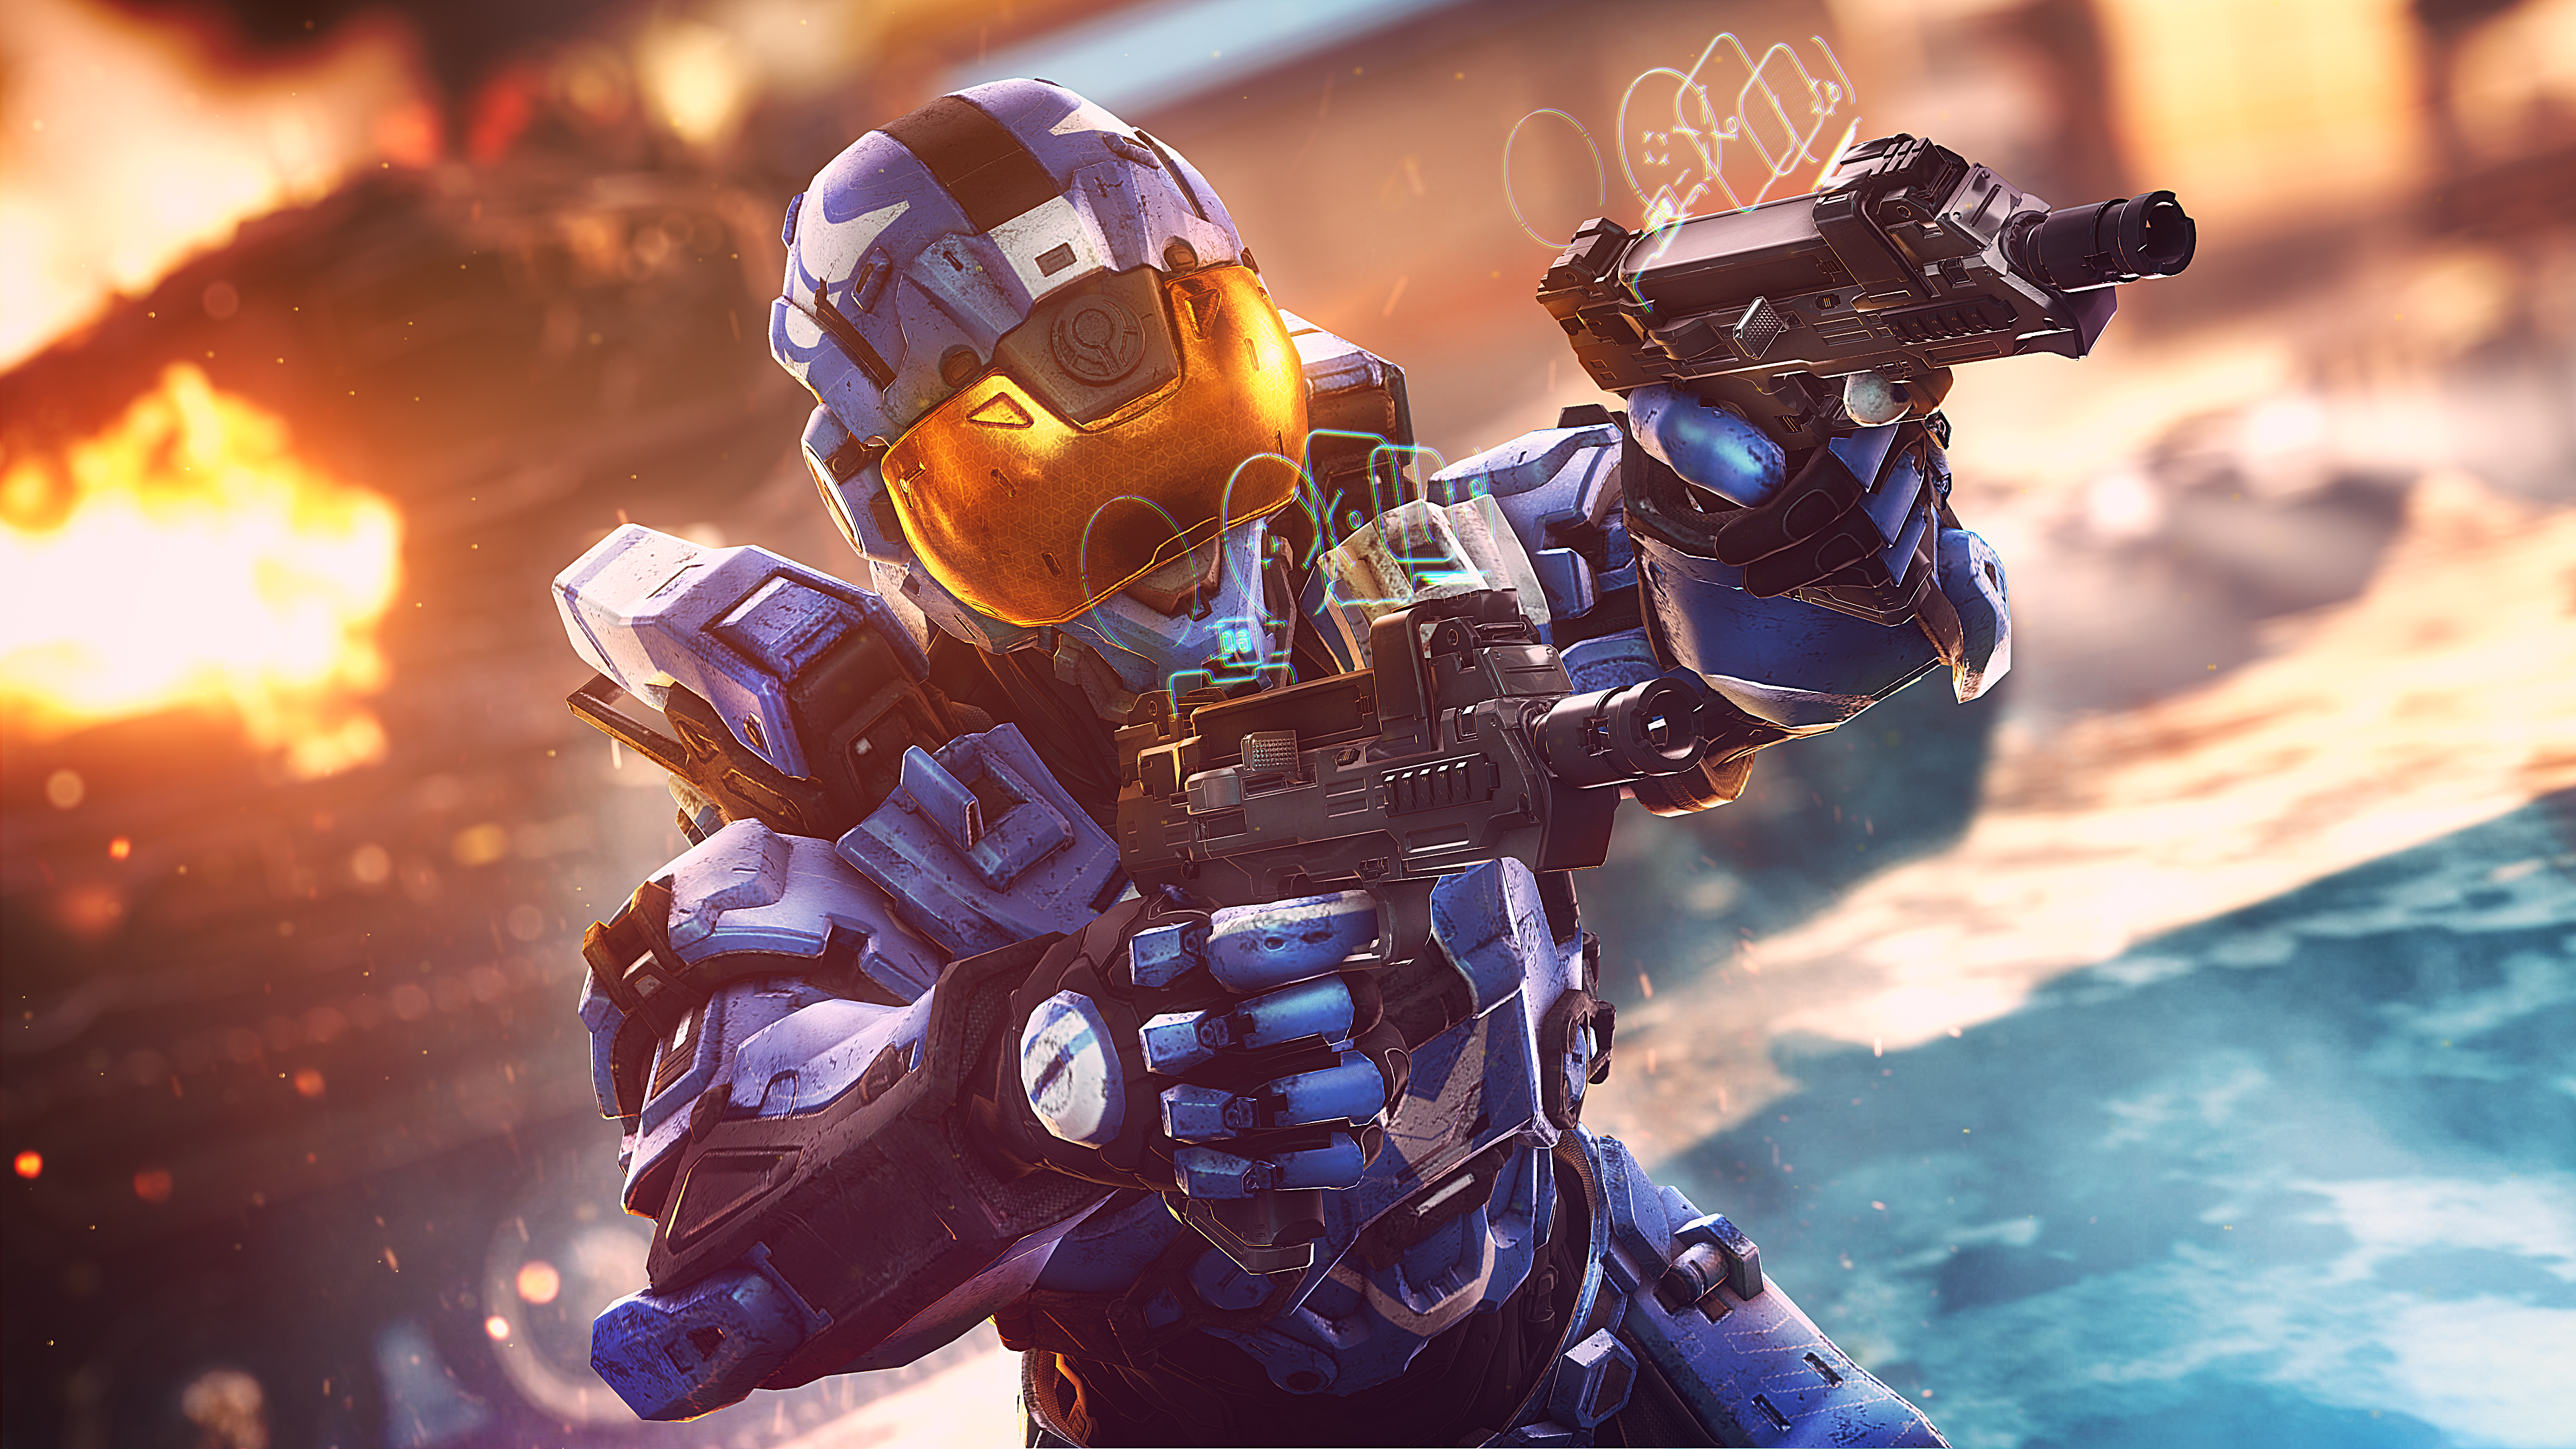 Halo Smartscopes 4K Wallpapers   HD Wallpapers